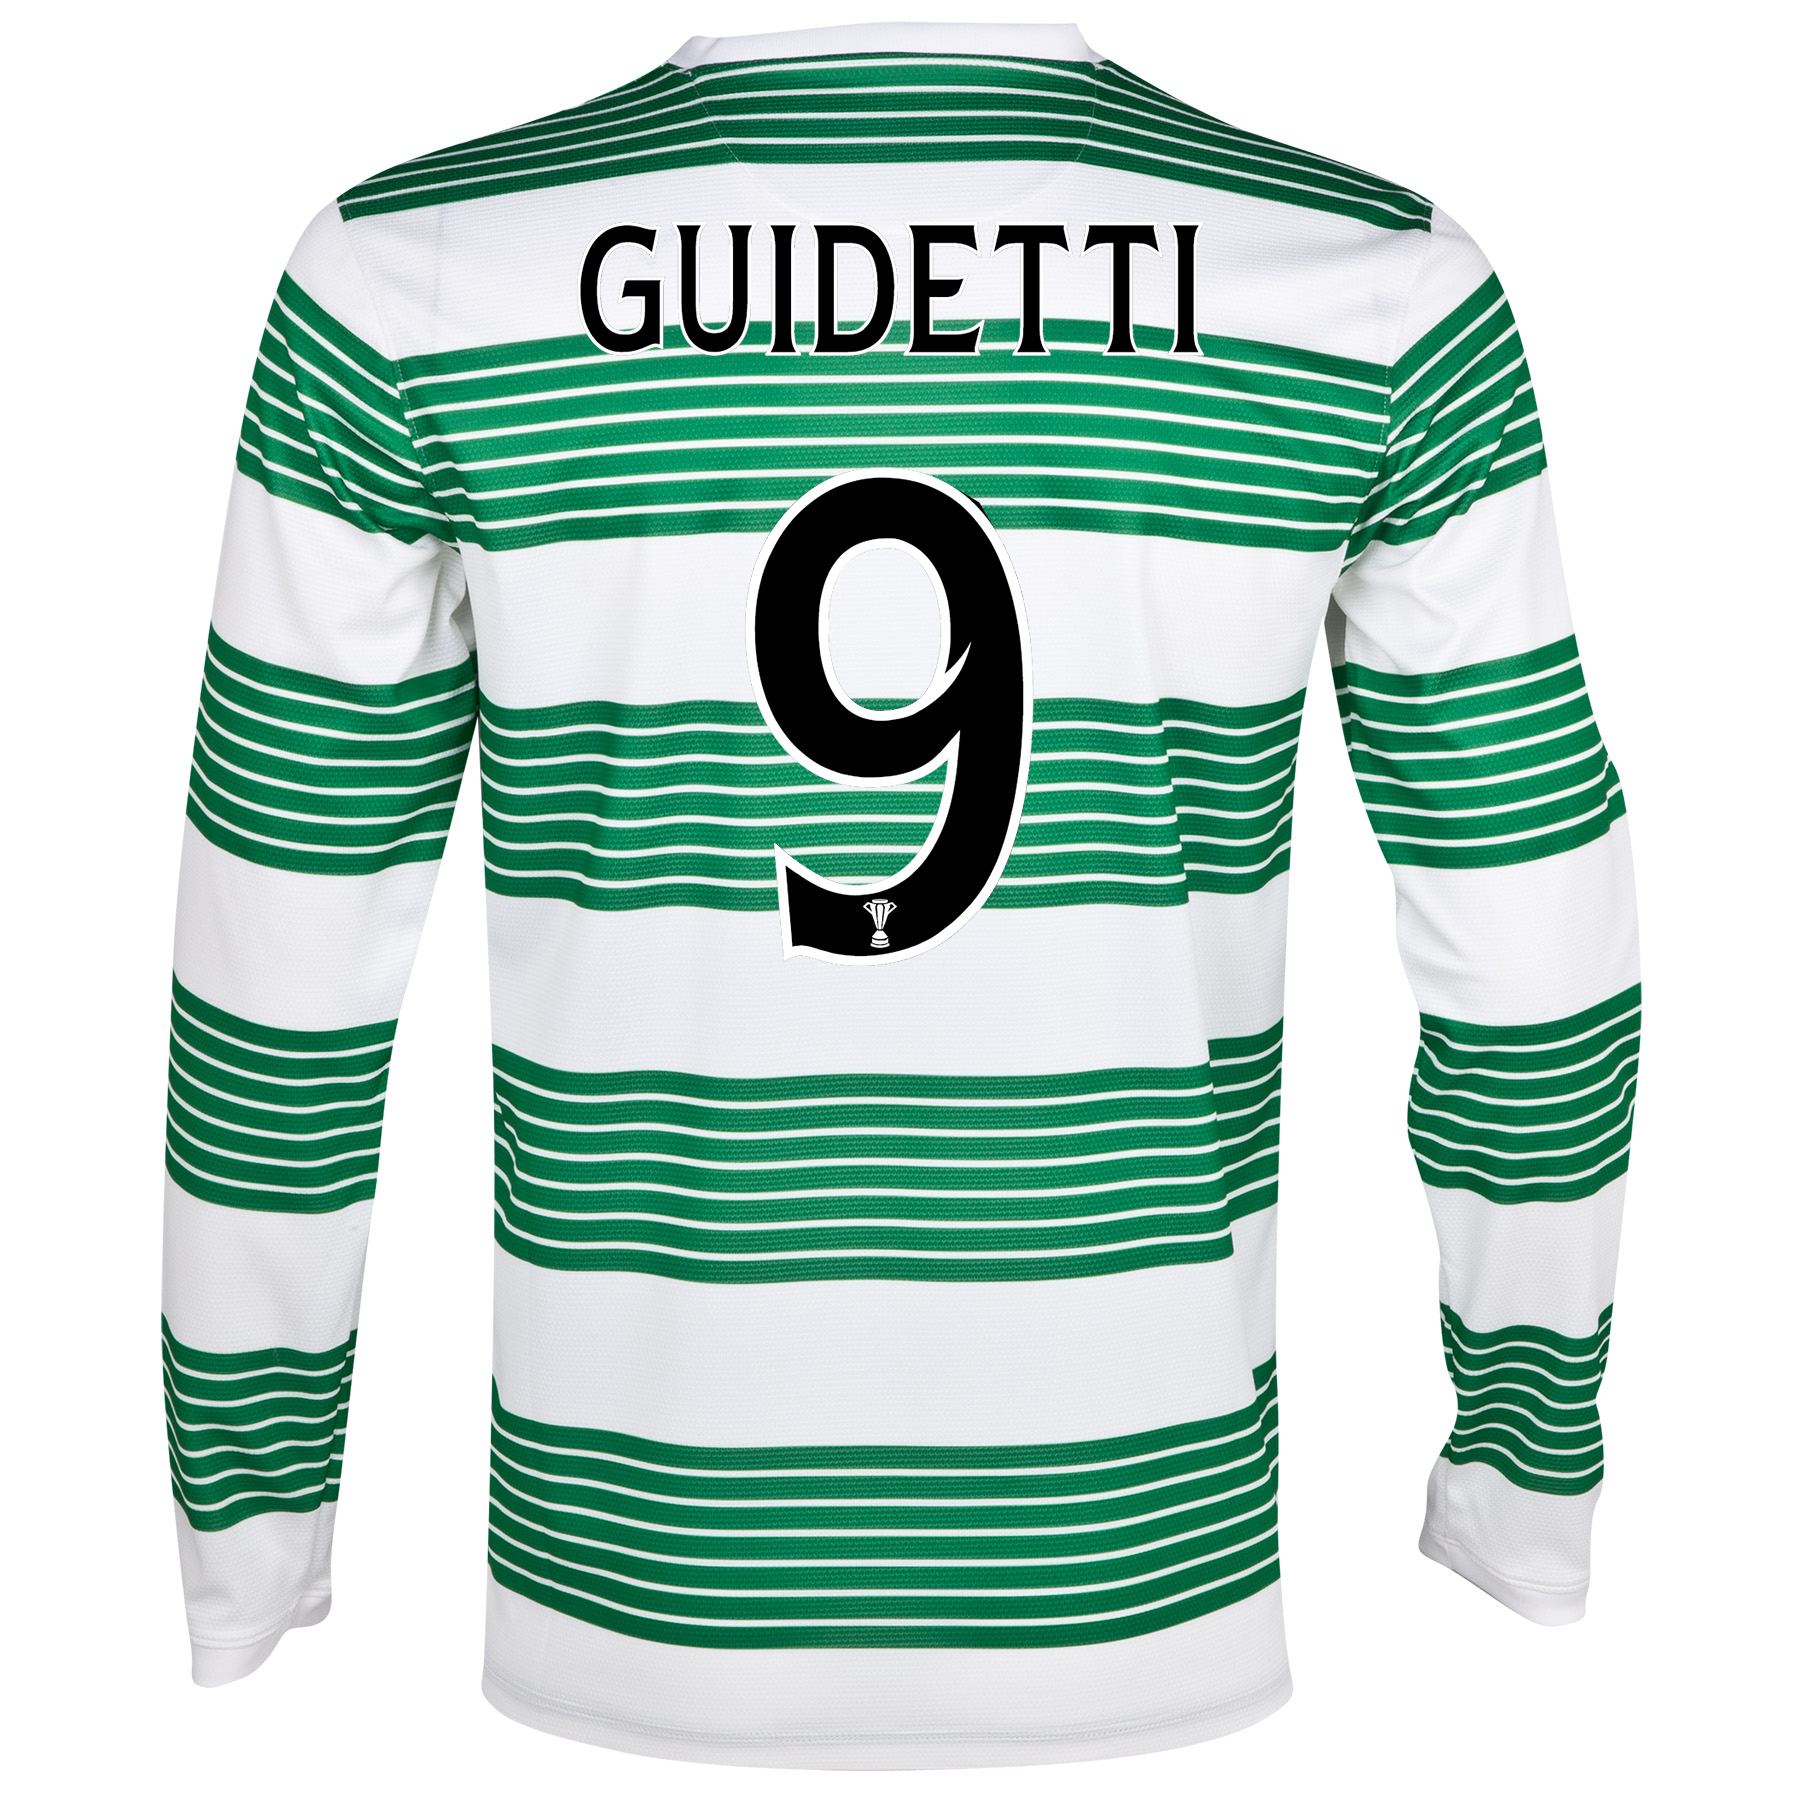 Celtic Home Shirt 2013/15 - L/S- With Sponsor with Guidetti 9 printing